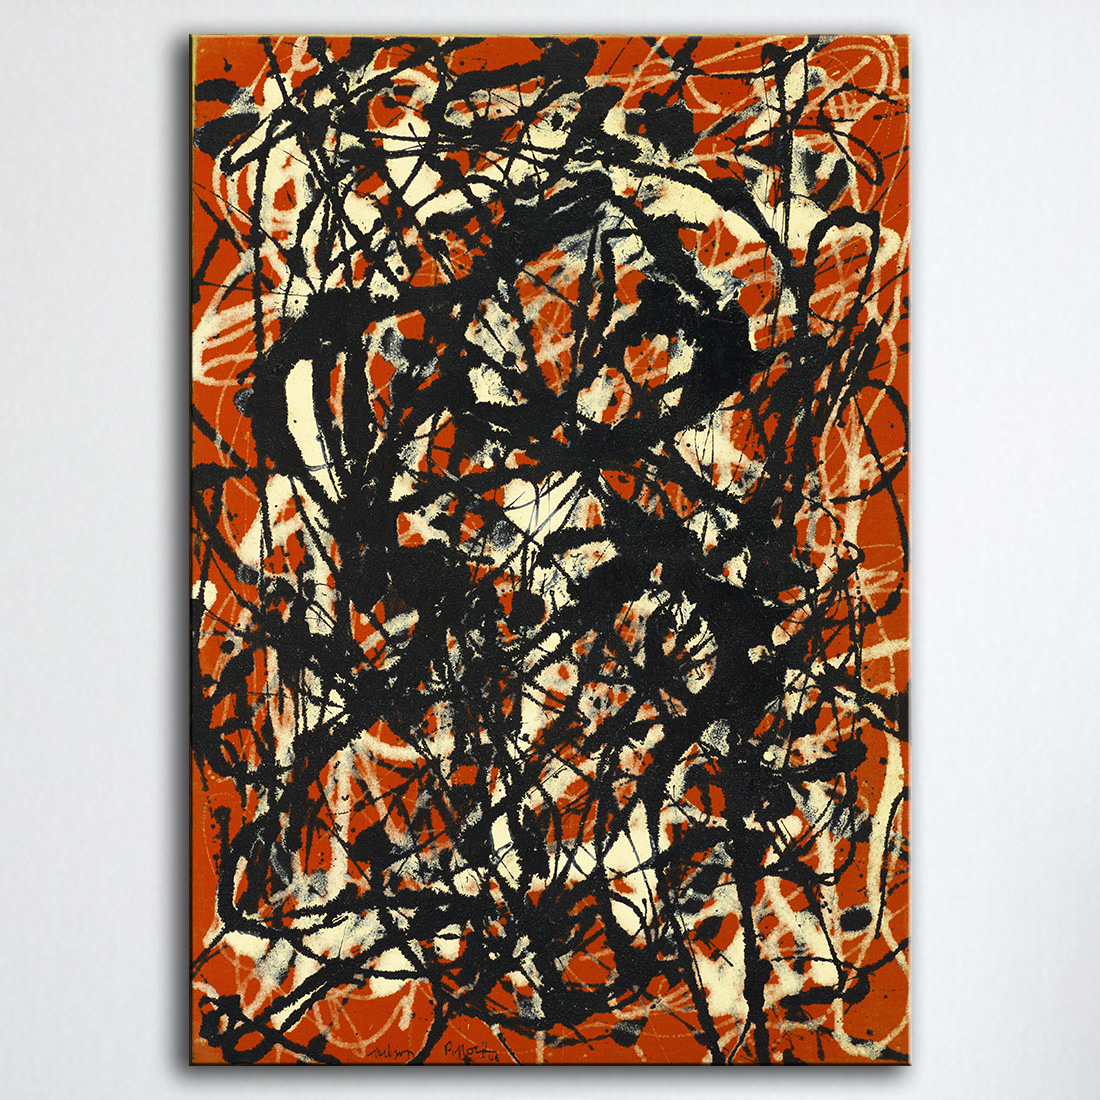 Jackson pollock paintings reviews online shopping for Mural jackson pollock